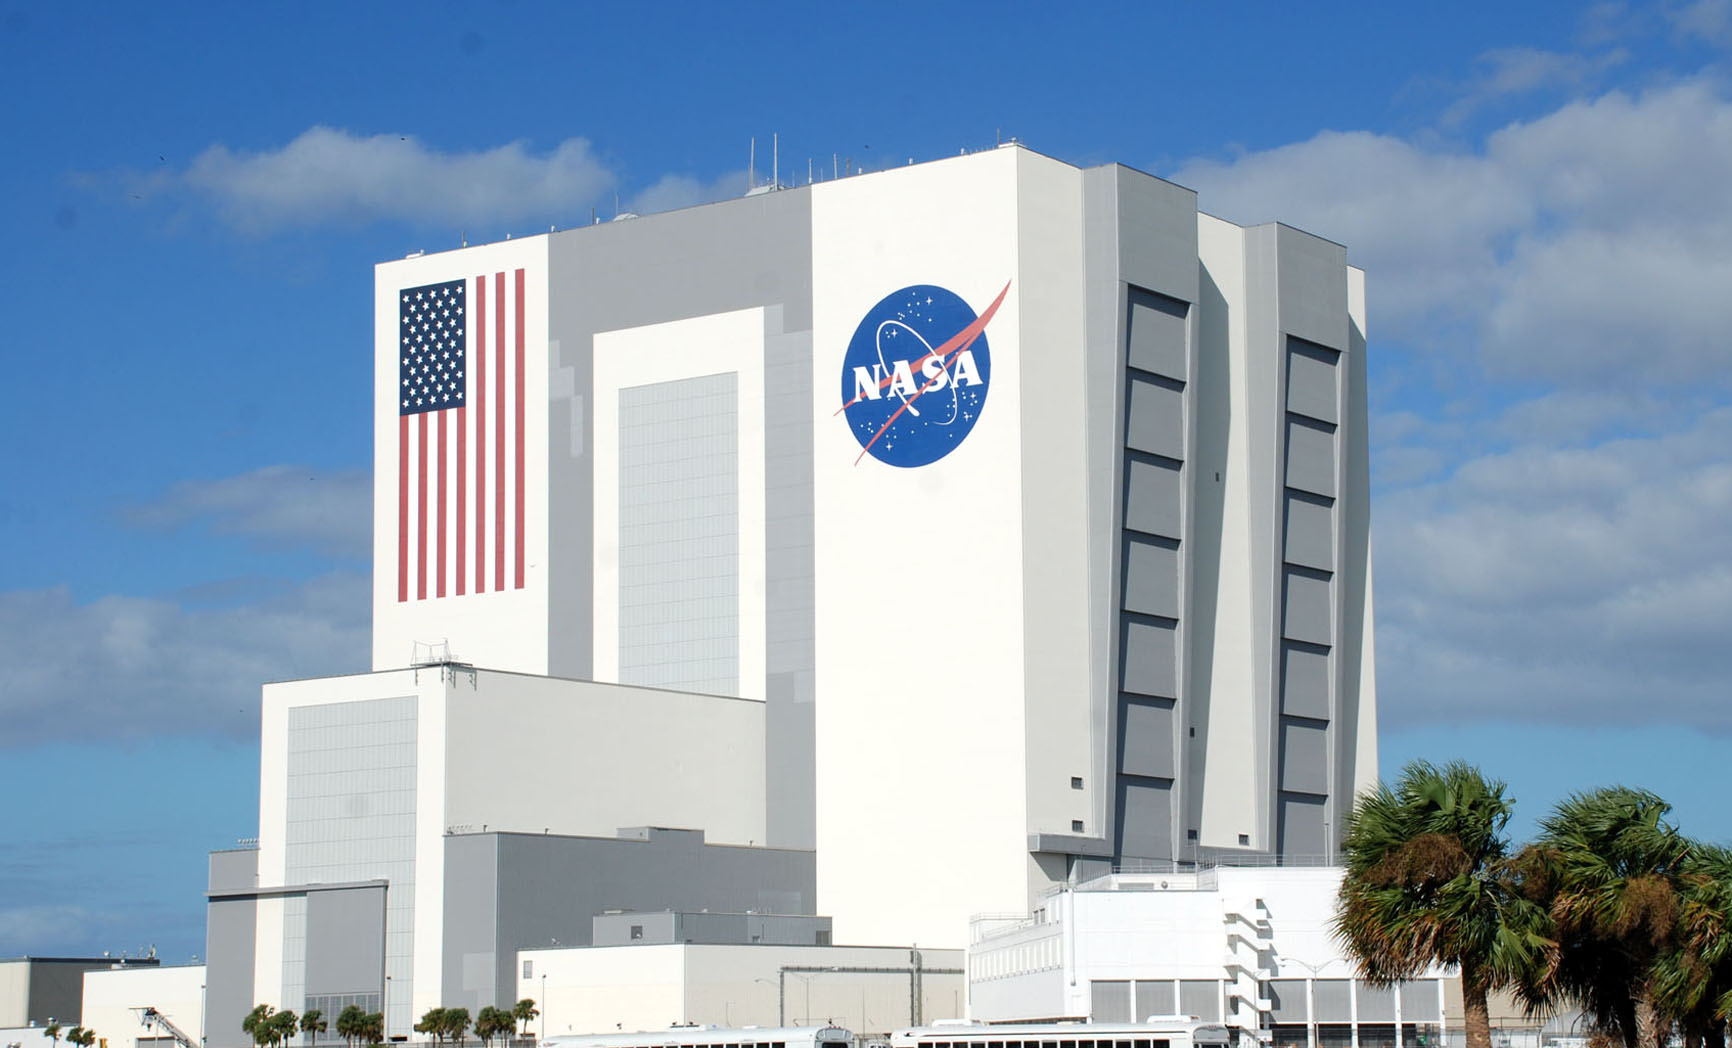 NASA's Vehicle Assembly Building, one of the largest buildings in the world.